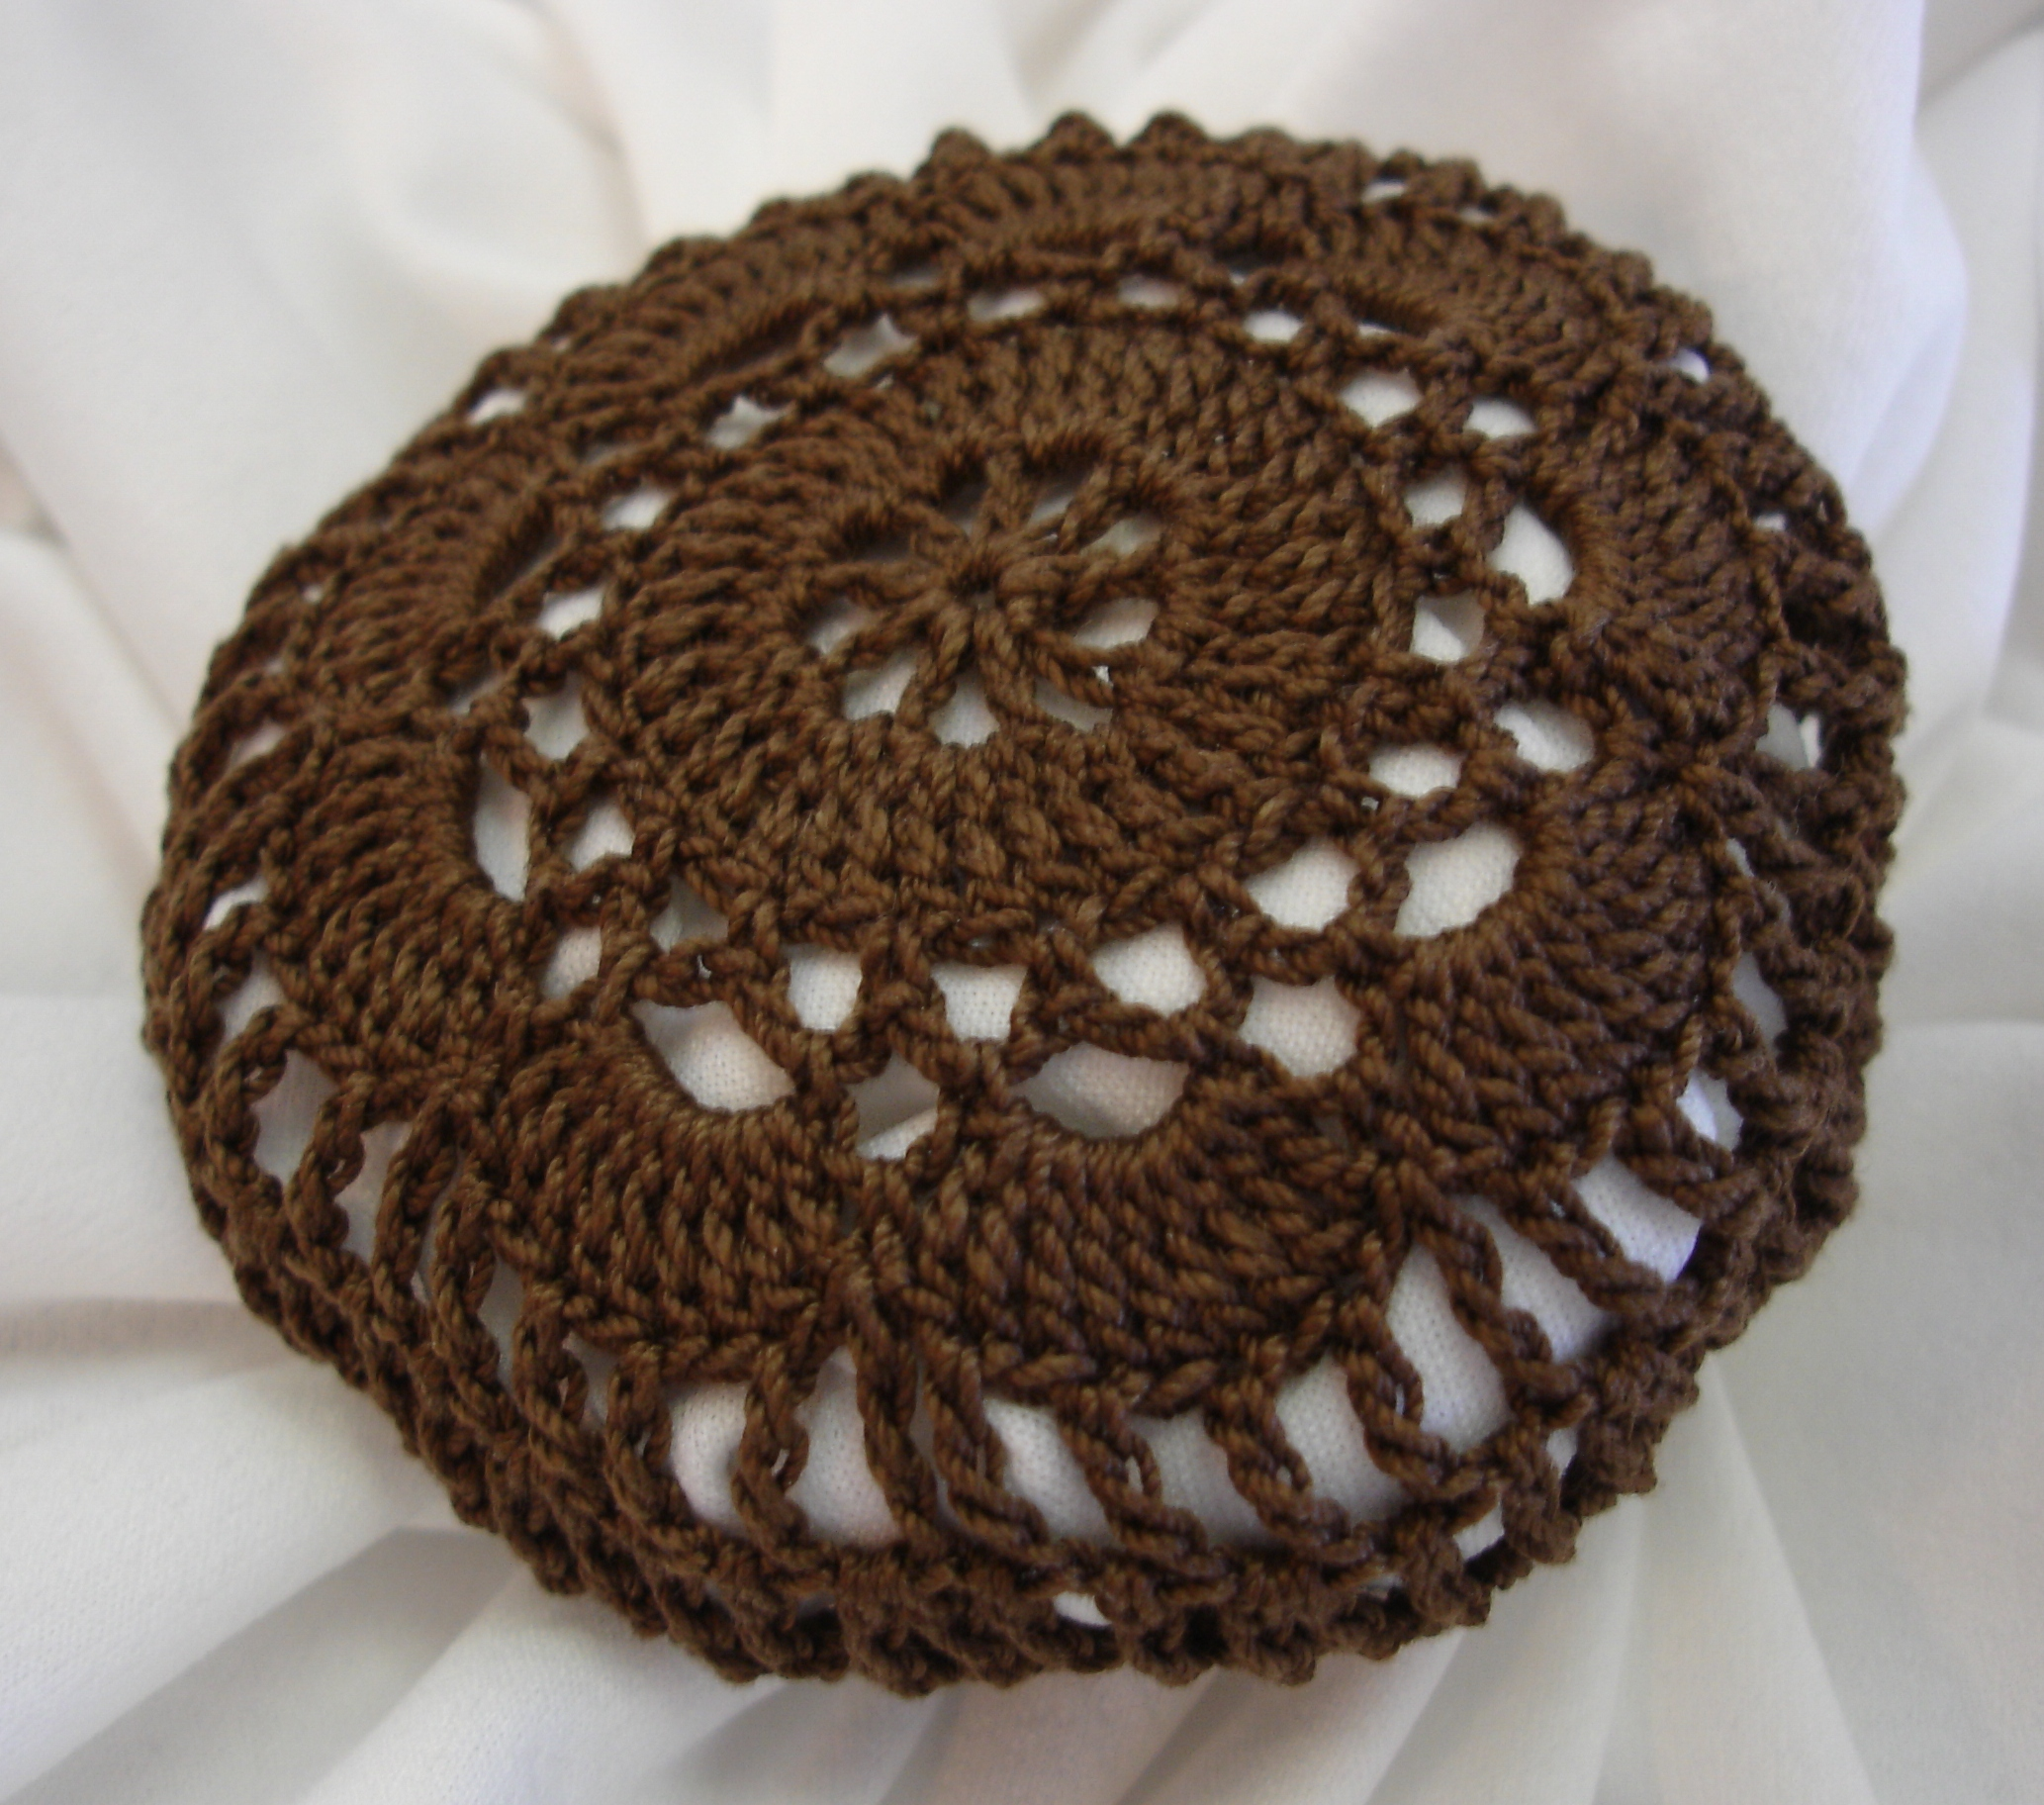 Crochet Hair In A Bun : Set of 3 Crocheted Hair Net / Bun Covers Flower Style merrydeals4u